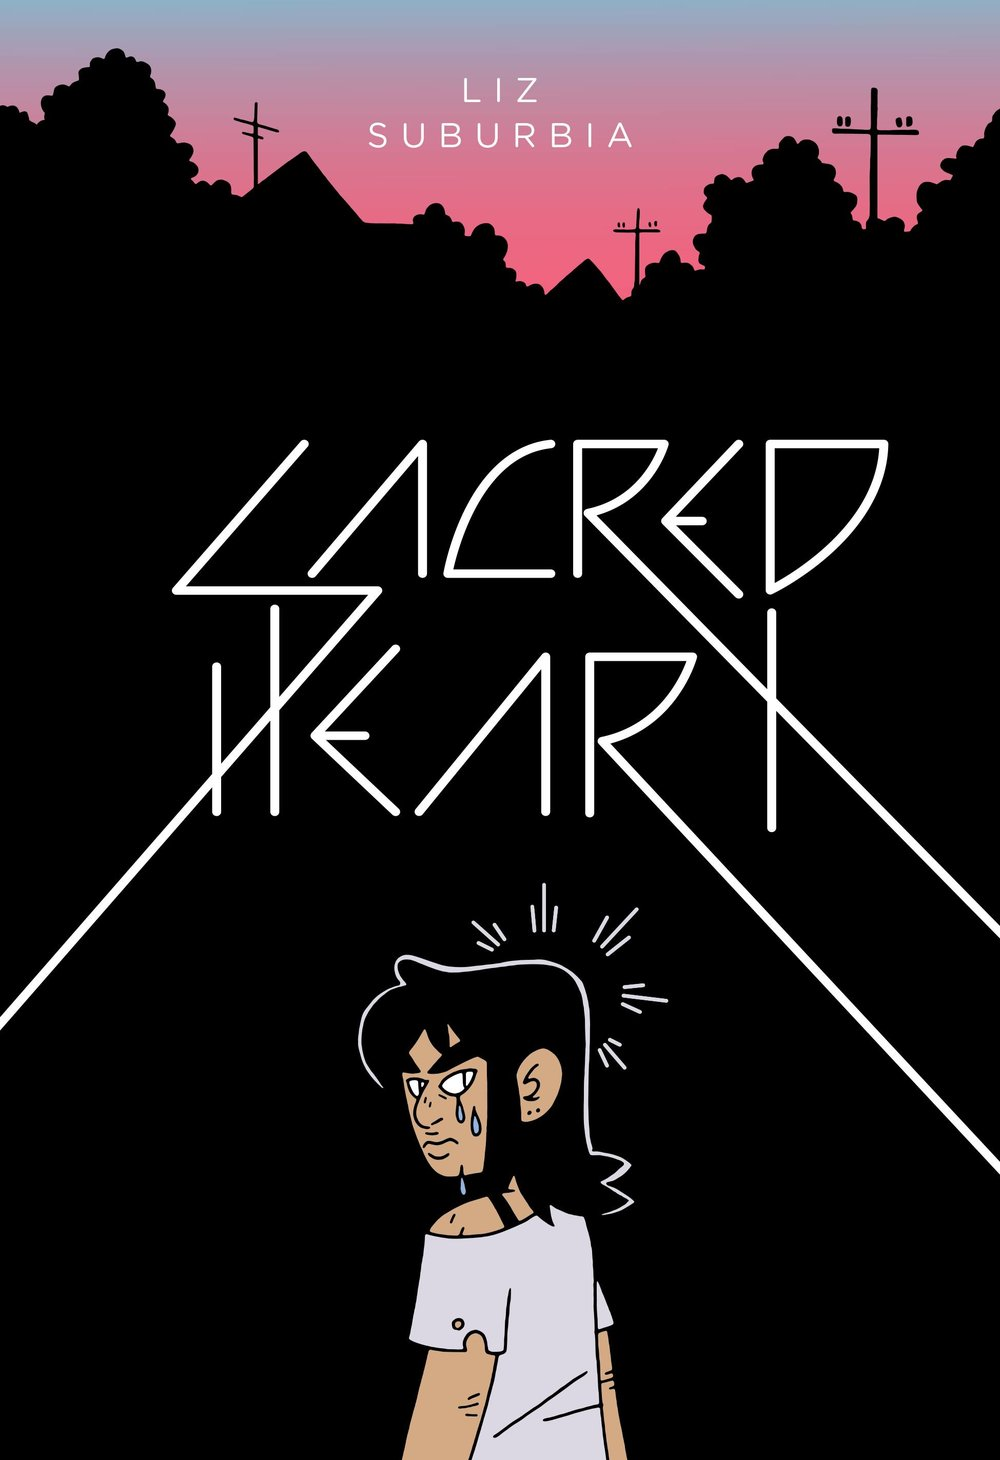 Sacred Heart GN - Lauren's PickWhat if all the adults vanished? This fascinating graphic novel takes a teenage fantasy to extremes, twisting it to unveil the horror lurking beneath an idea every adolescent has daydreamed about. Ben Schiller, her younger sister Empathy, and their various underage peers are the only remaining residents of their small town. As the kids go through the motions of normal life—parties, school, personal dramatics—writer/artist Liz Suburbia drops hints of something sinister. Without teachers the school is simply a gathering place, attendance part of a routine that the characters cling to. Ben passes a dead body on her way home, news that is met with little more than a shrug when she reports it to her friends. References to parents returning are sprinkled through conversations at parties, and everyone seems to be waiting for something. But what? This semi-apocalyptic tale is driven by its characters, each developed as much in silent montage as in the plot of the story itself. Suburbia executes each panel masterfully in black and white, with an attention to detail that will have you wanting to read this book again as soon as you make it to the big reveal on the last page.